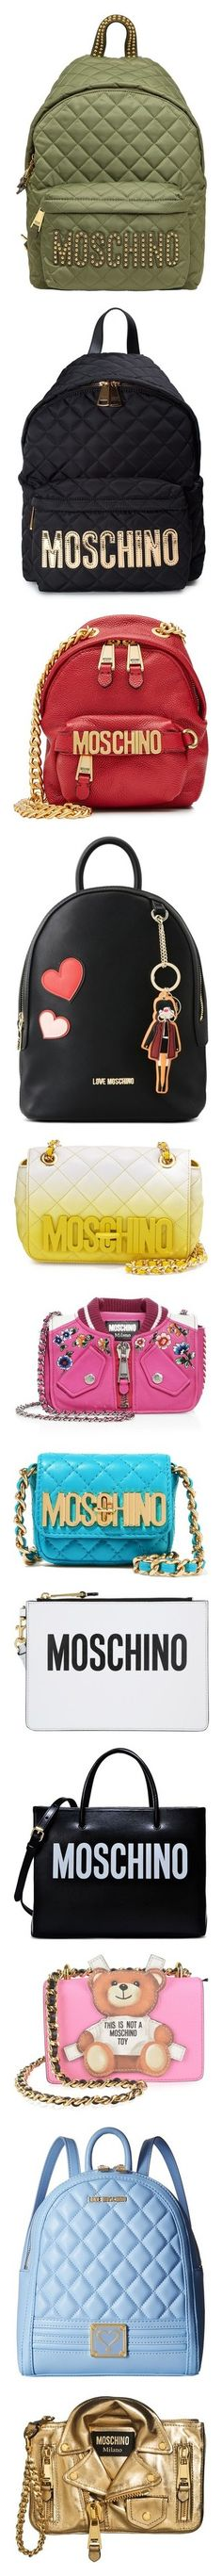 """""""MOSCHINO"""" by sweetika ❤ liked on Polyvore featuring bags, backpacks, accessories, khaki, green backpack, studded backpack, moschino, backpack bags, moschino bags and nero"""